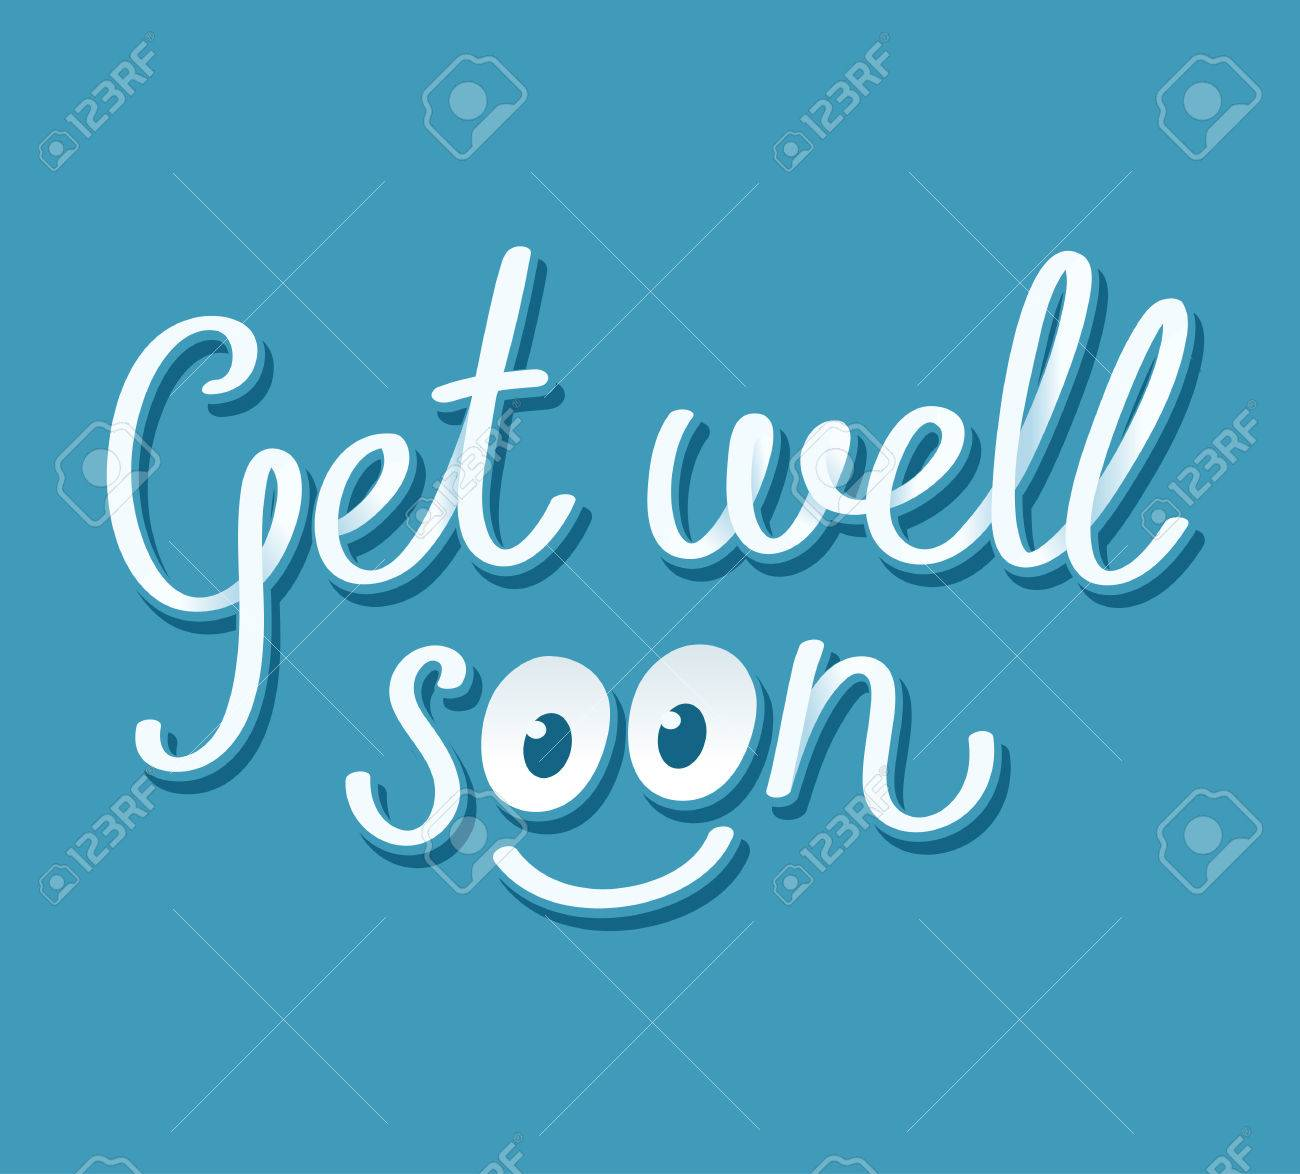 Startling Get Well Soon Handwritten Card Smiley Vector Get Well Soon Quotes After Surgery Get Well Soon Quotes Smiley Vector Vector Get Well Soon Handwritten Card cards Get Well Soon Cute